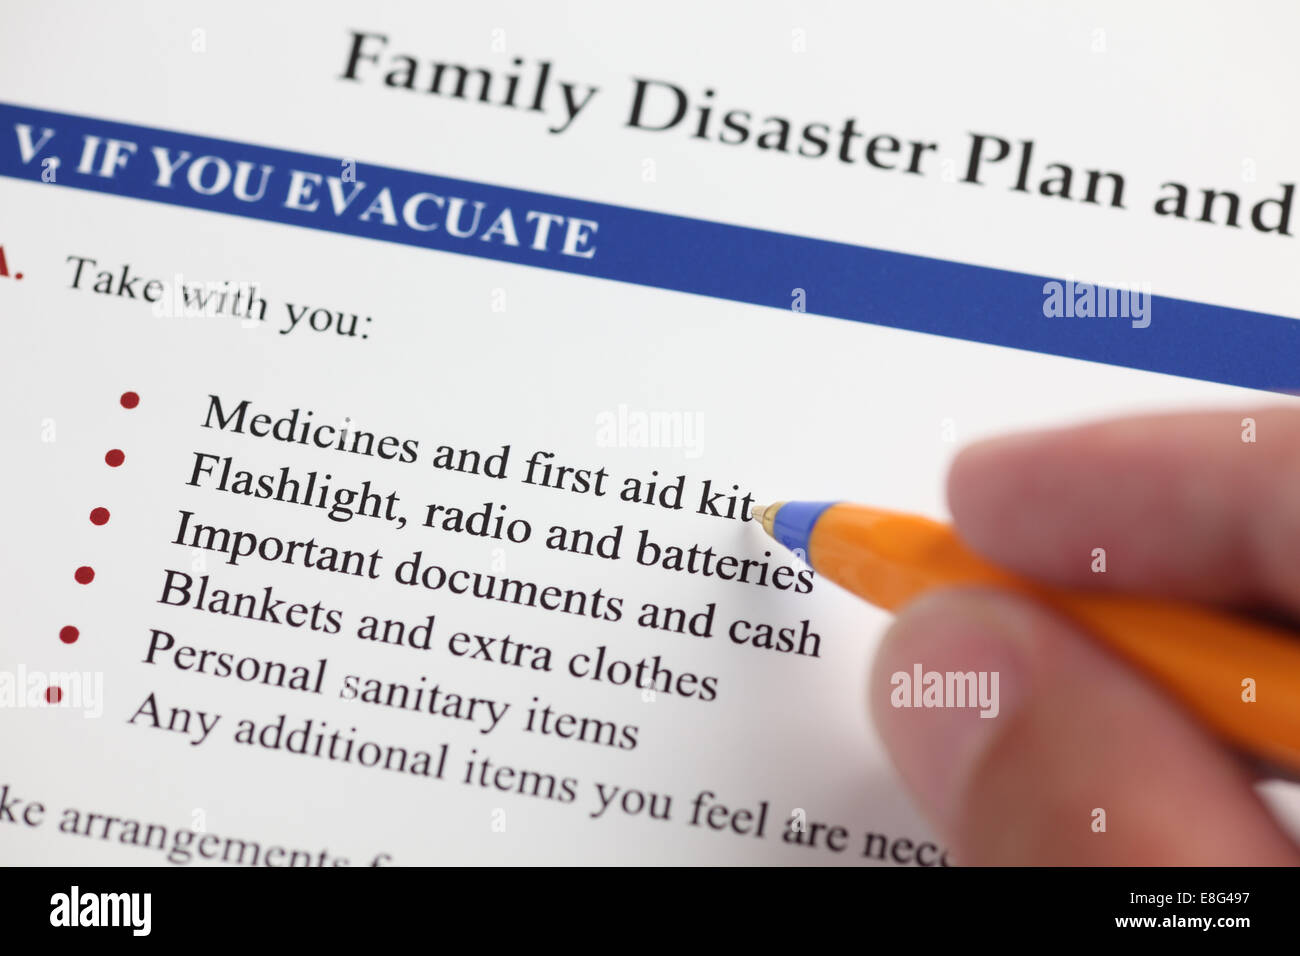 Family Disaster Plan and hand with ballpoint pen. Close-up. - Stock Image